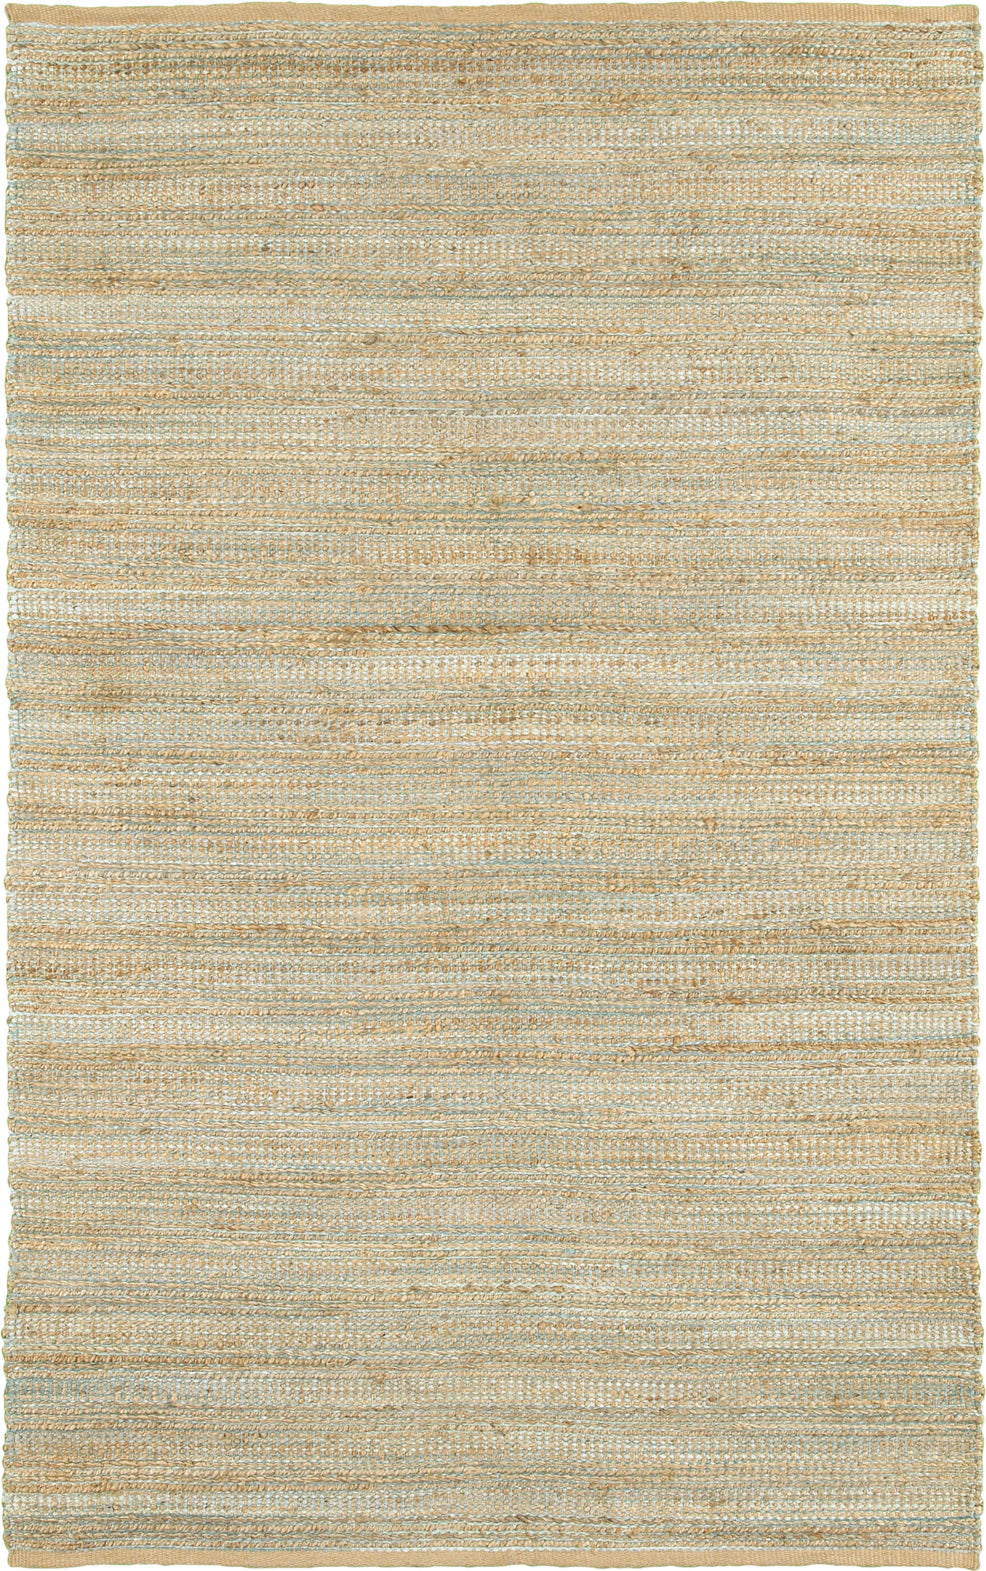 LR Resources Natural Fiber 3337 Spa Blue Area Rug main image